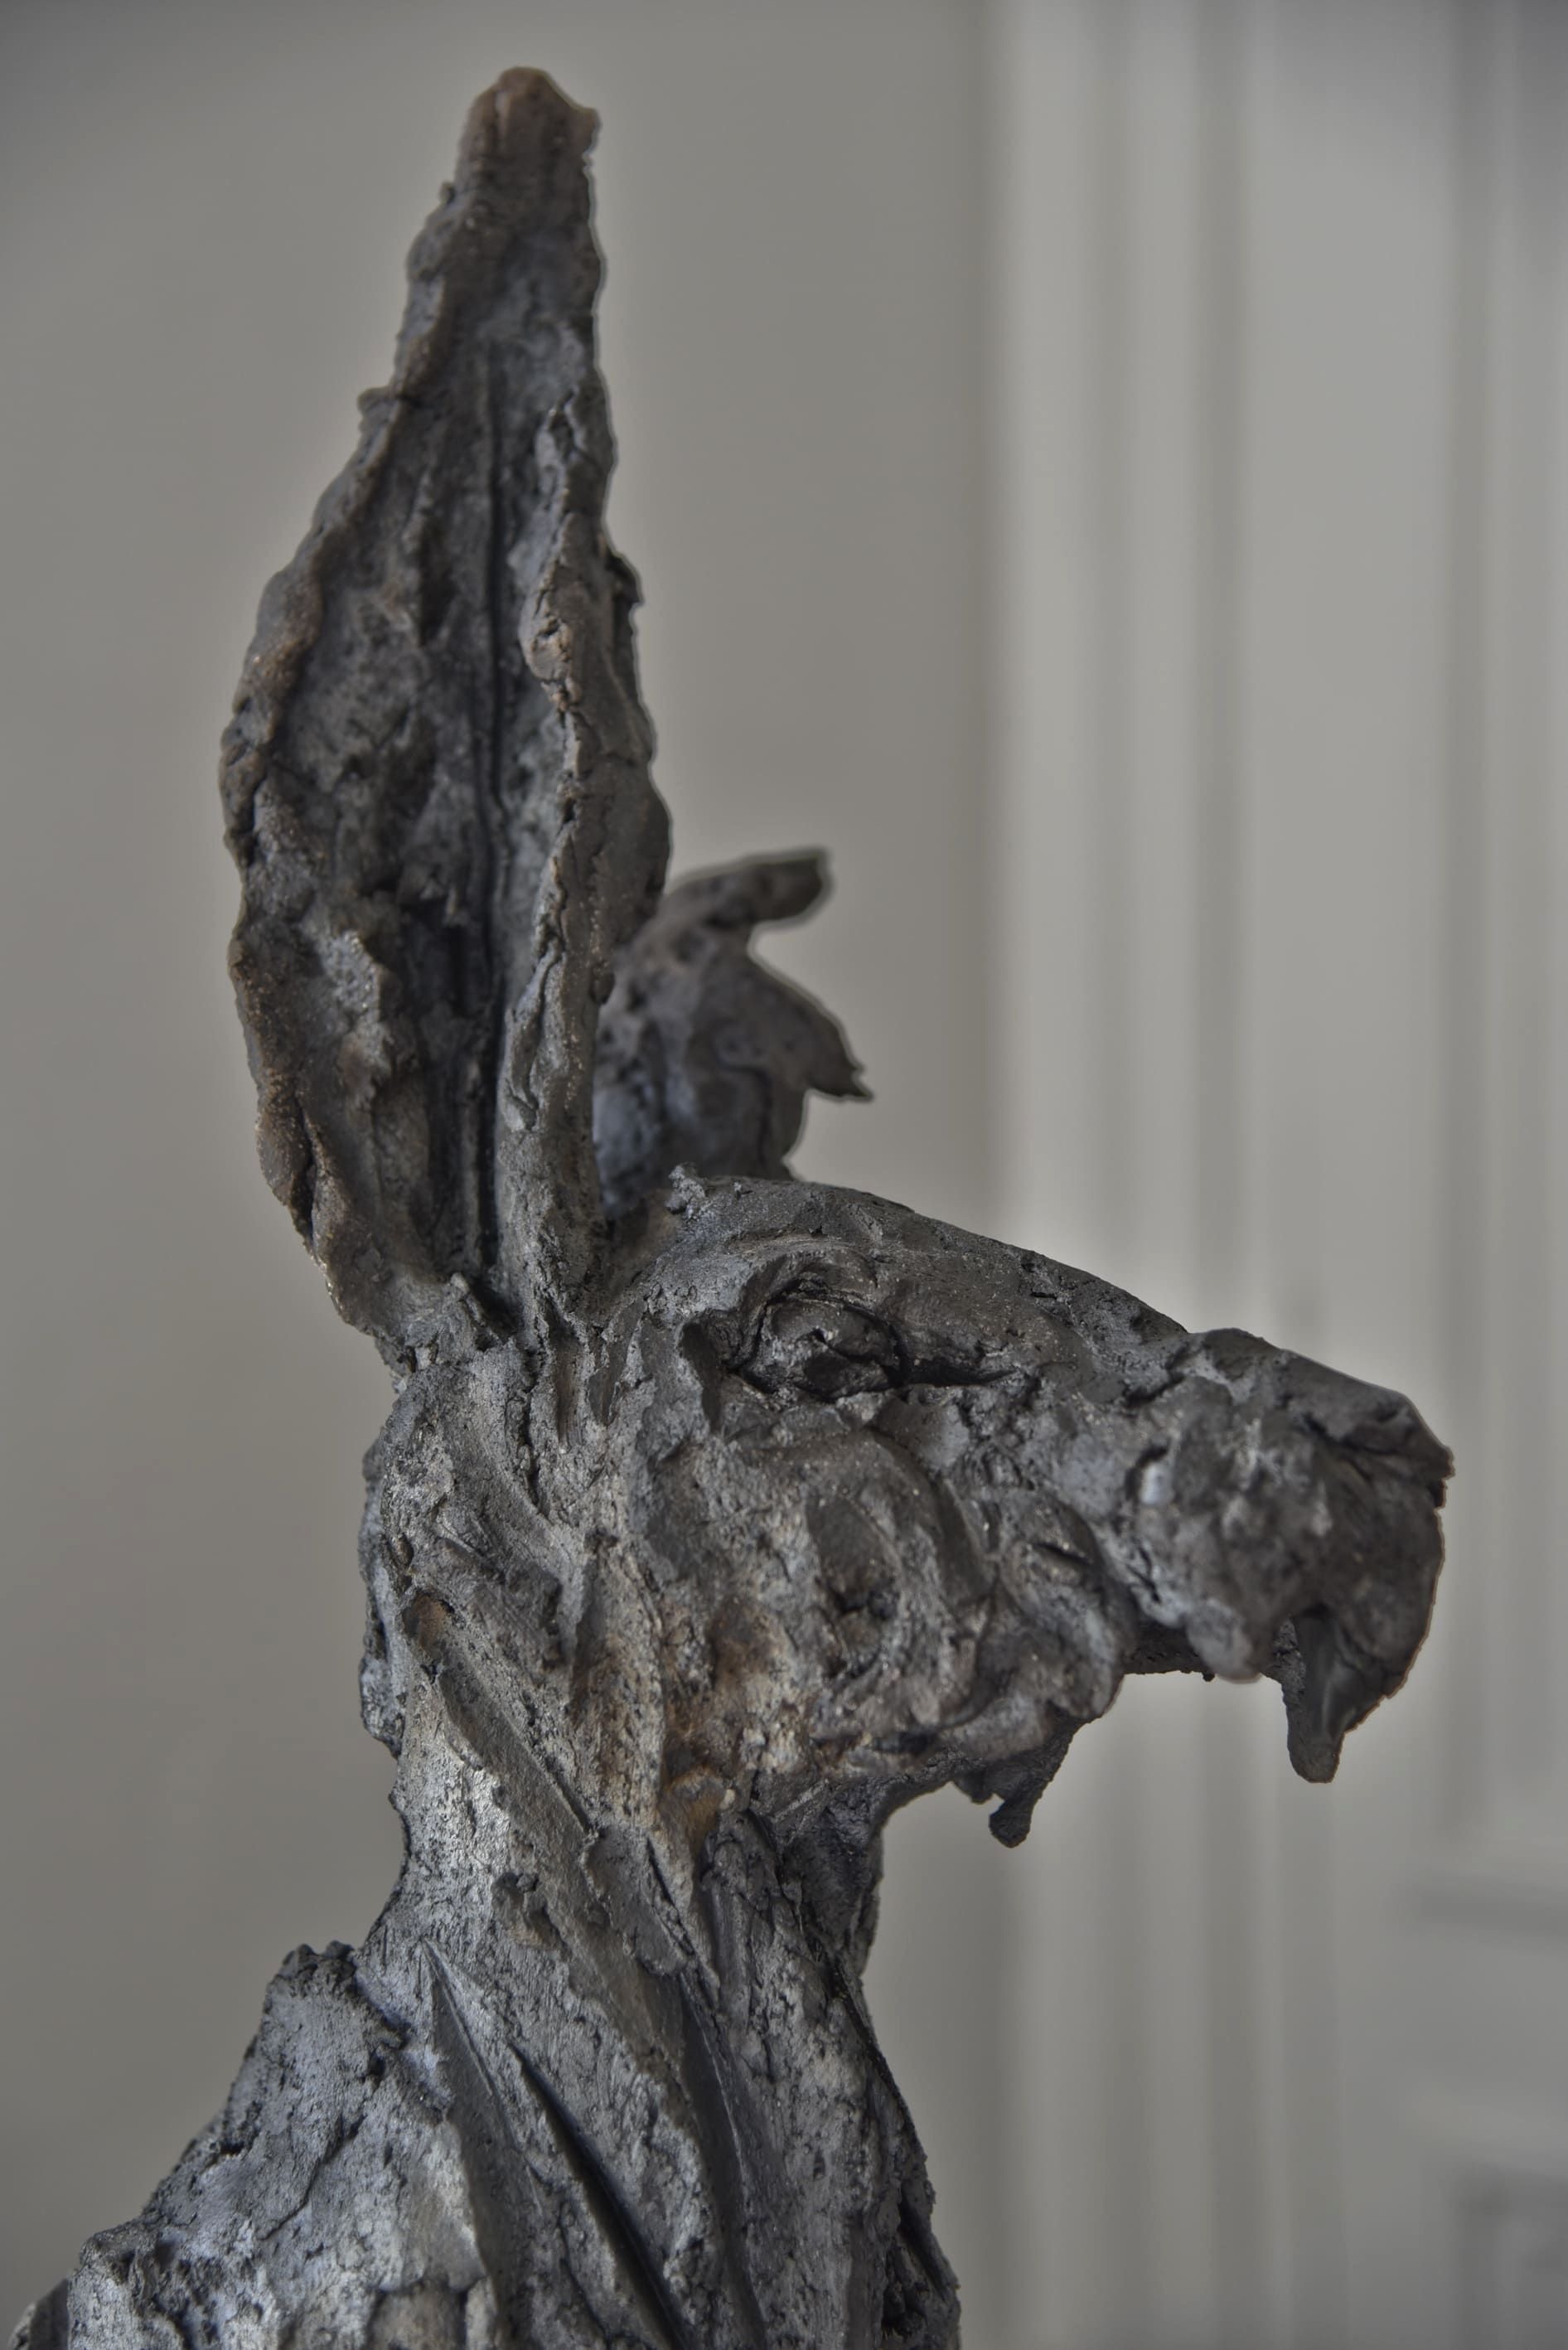 Peau d'Hase,Cécile Raynal,Sculpture contemporaine, detail 2